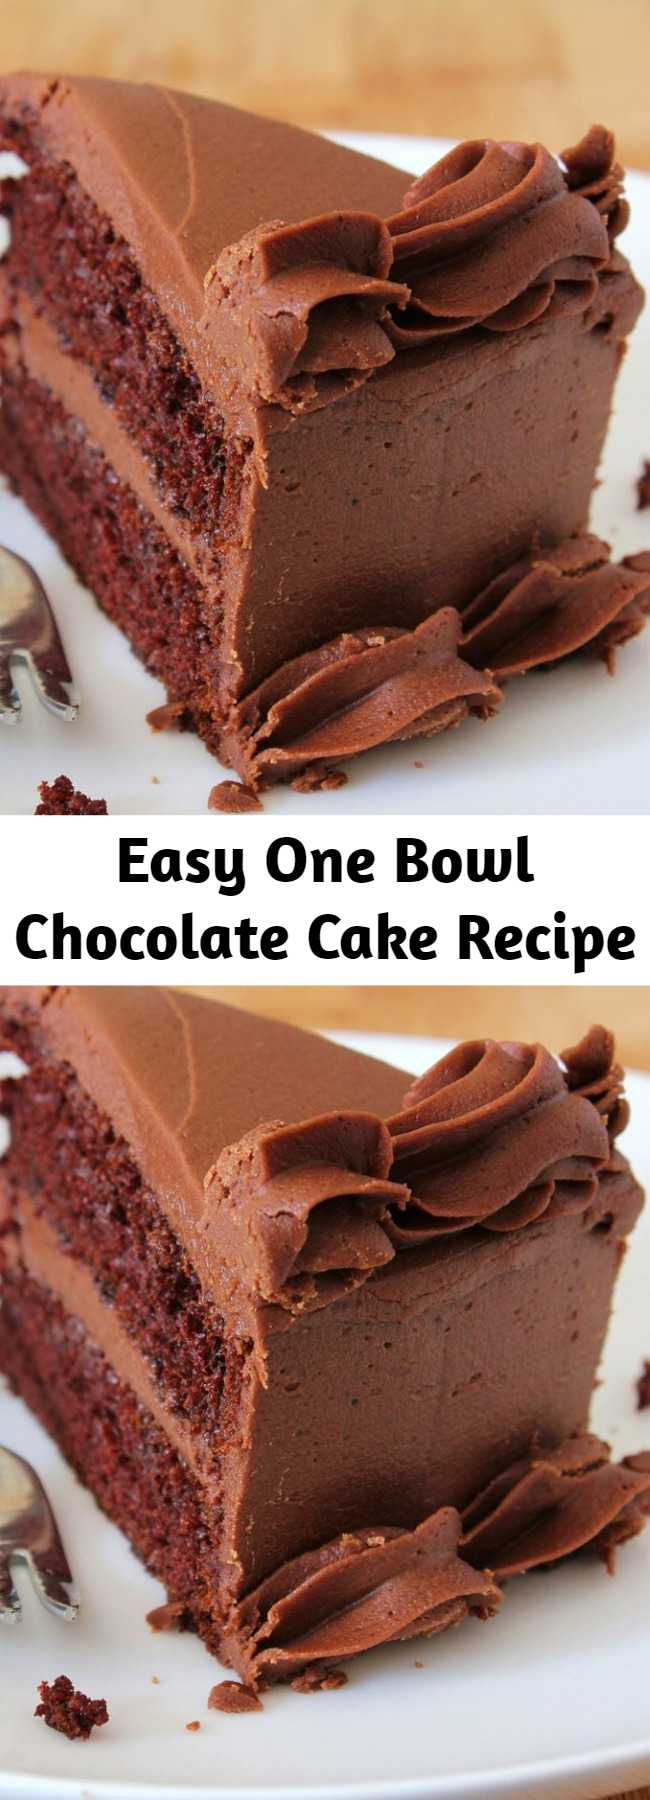 Easy One Bowl Chocolate Cake Recipe - This is a rich and moist chocolate cake. It only takes a few minutes to prepare the batter. Frost with your favorite chocolate frosting.